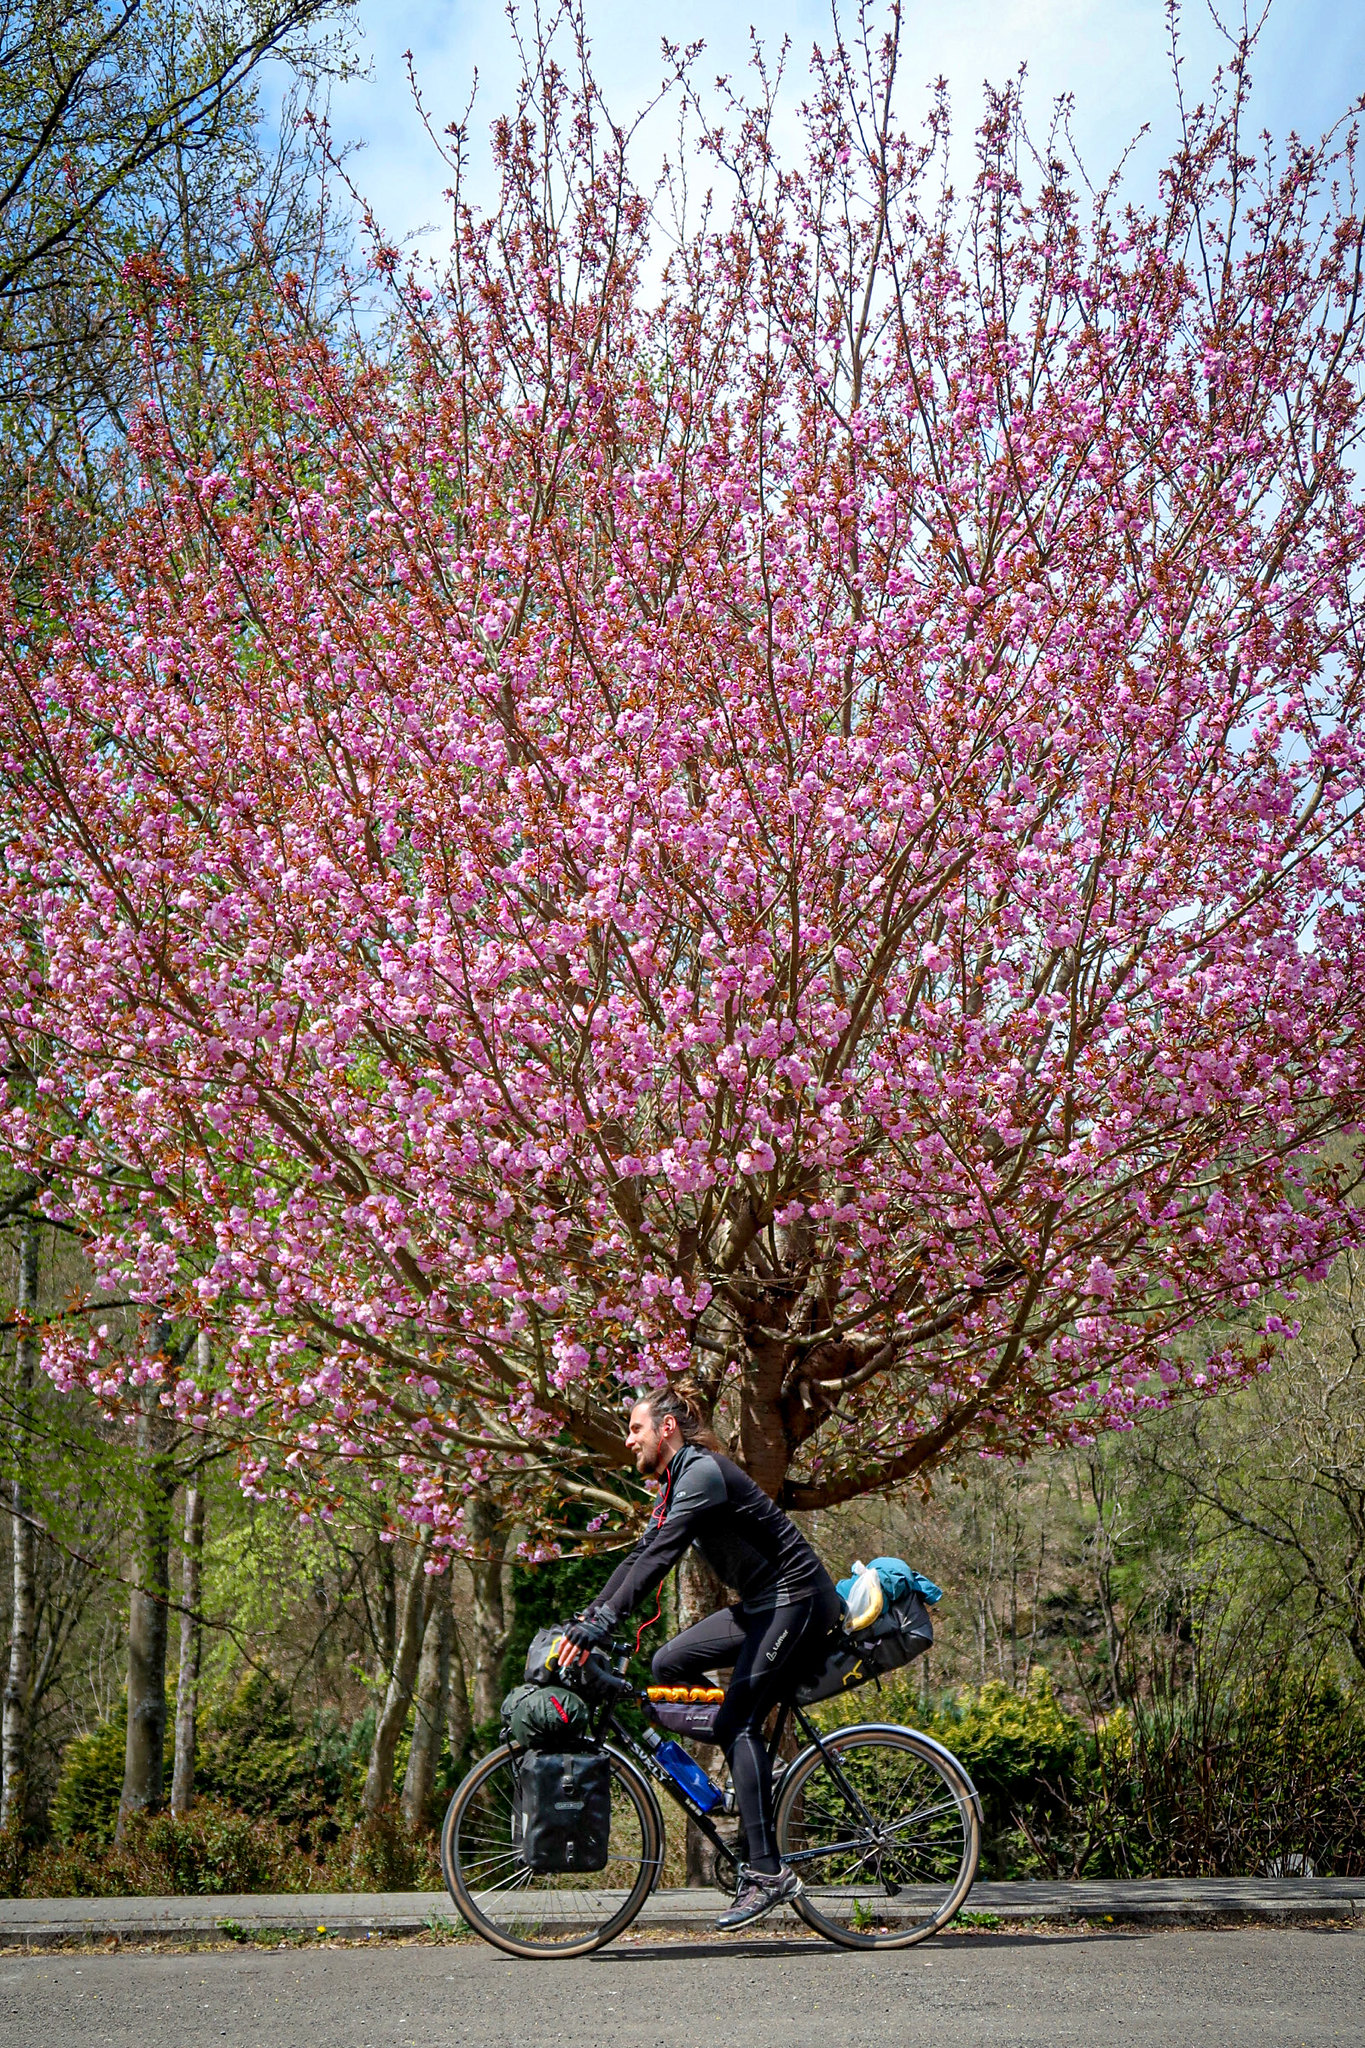 Cycling in blossom